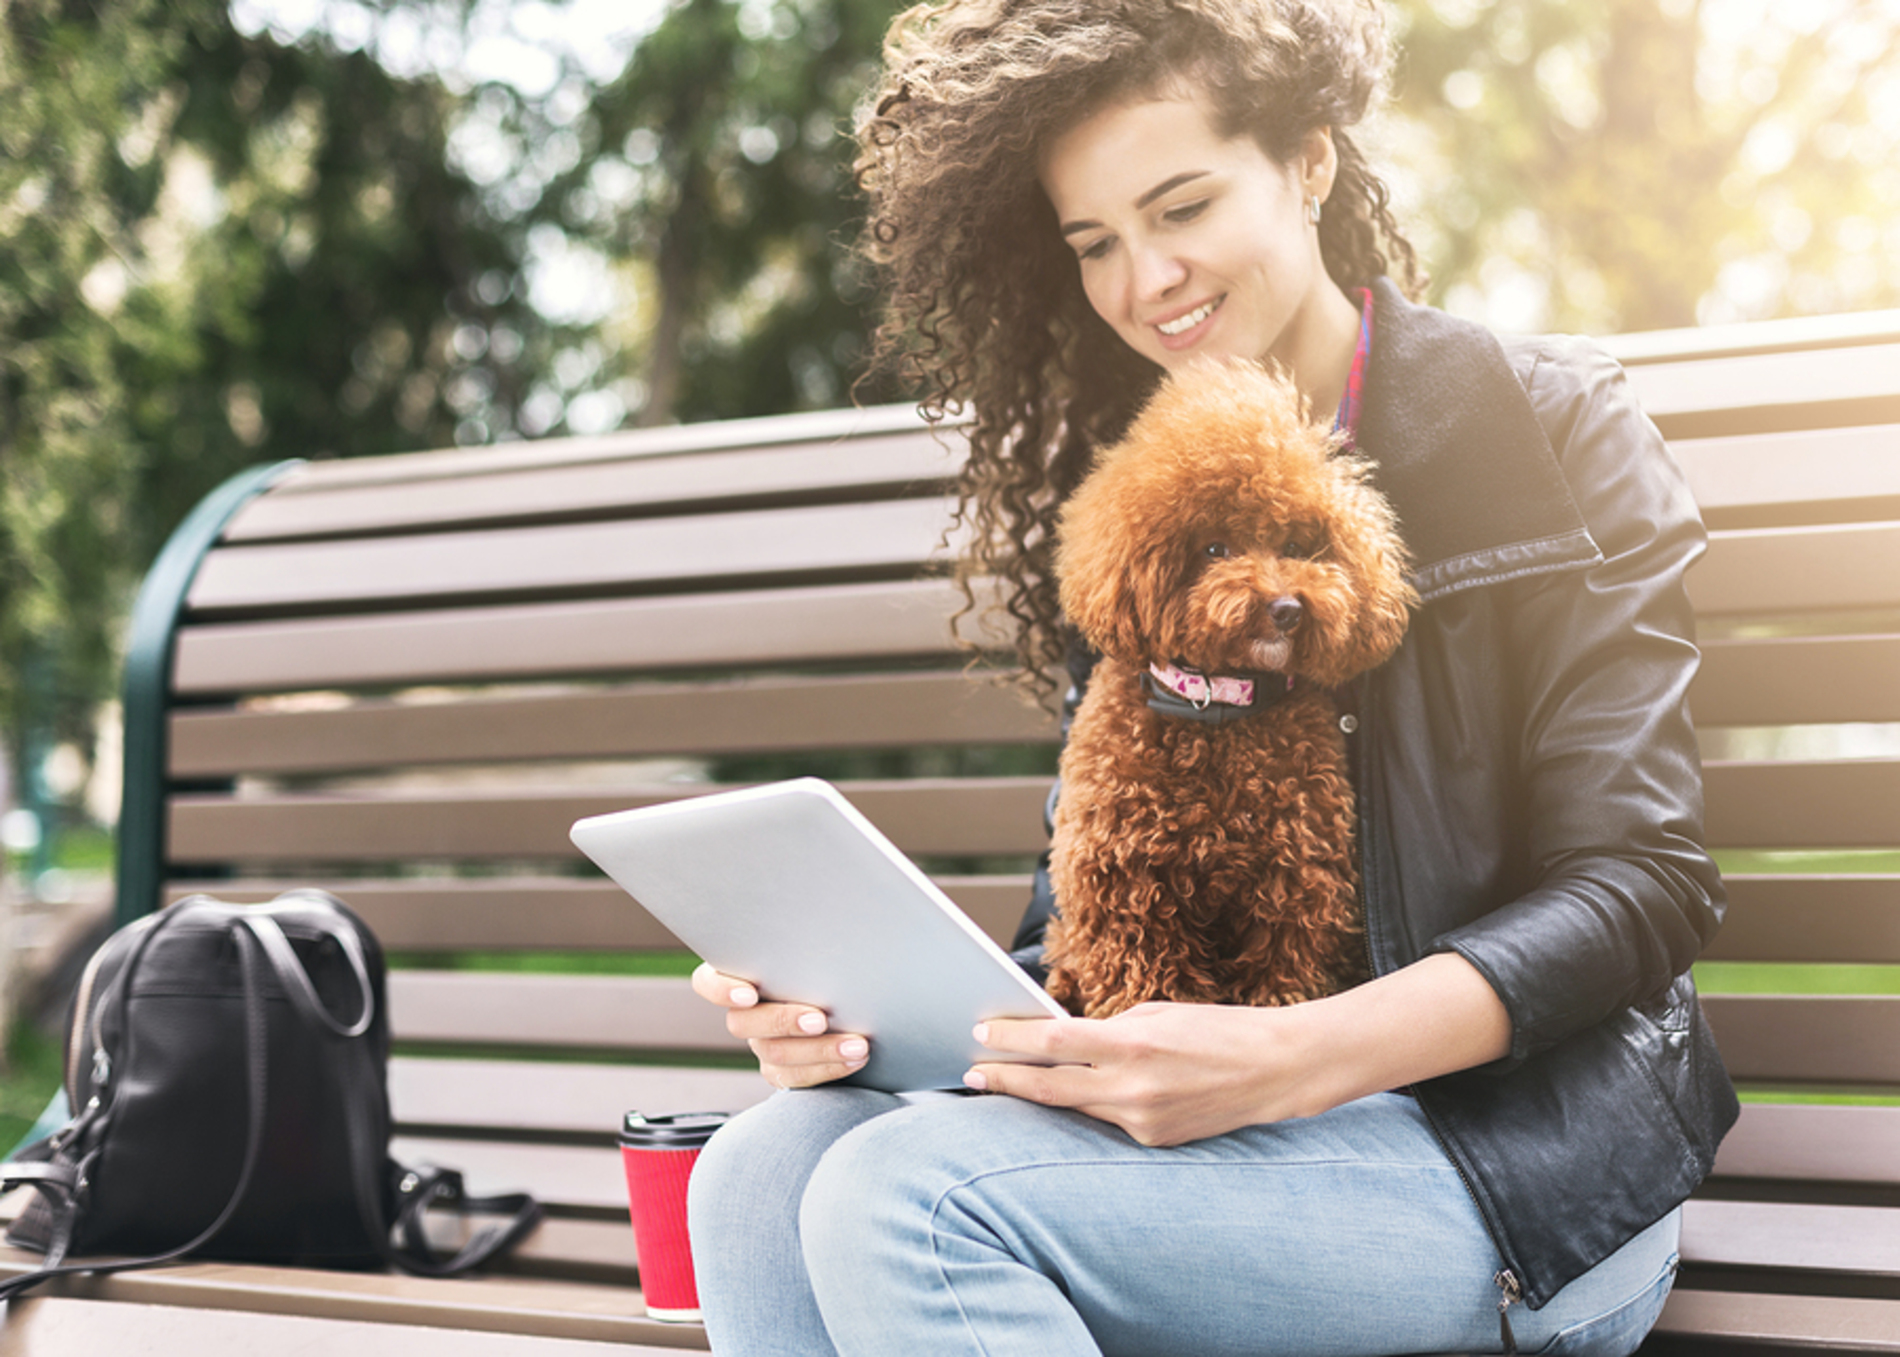 Woman sitting on a park bench with her dog and looking at her tablet.